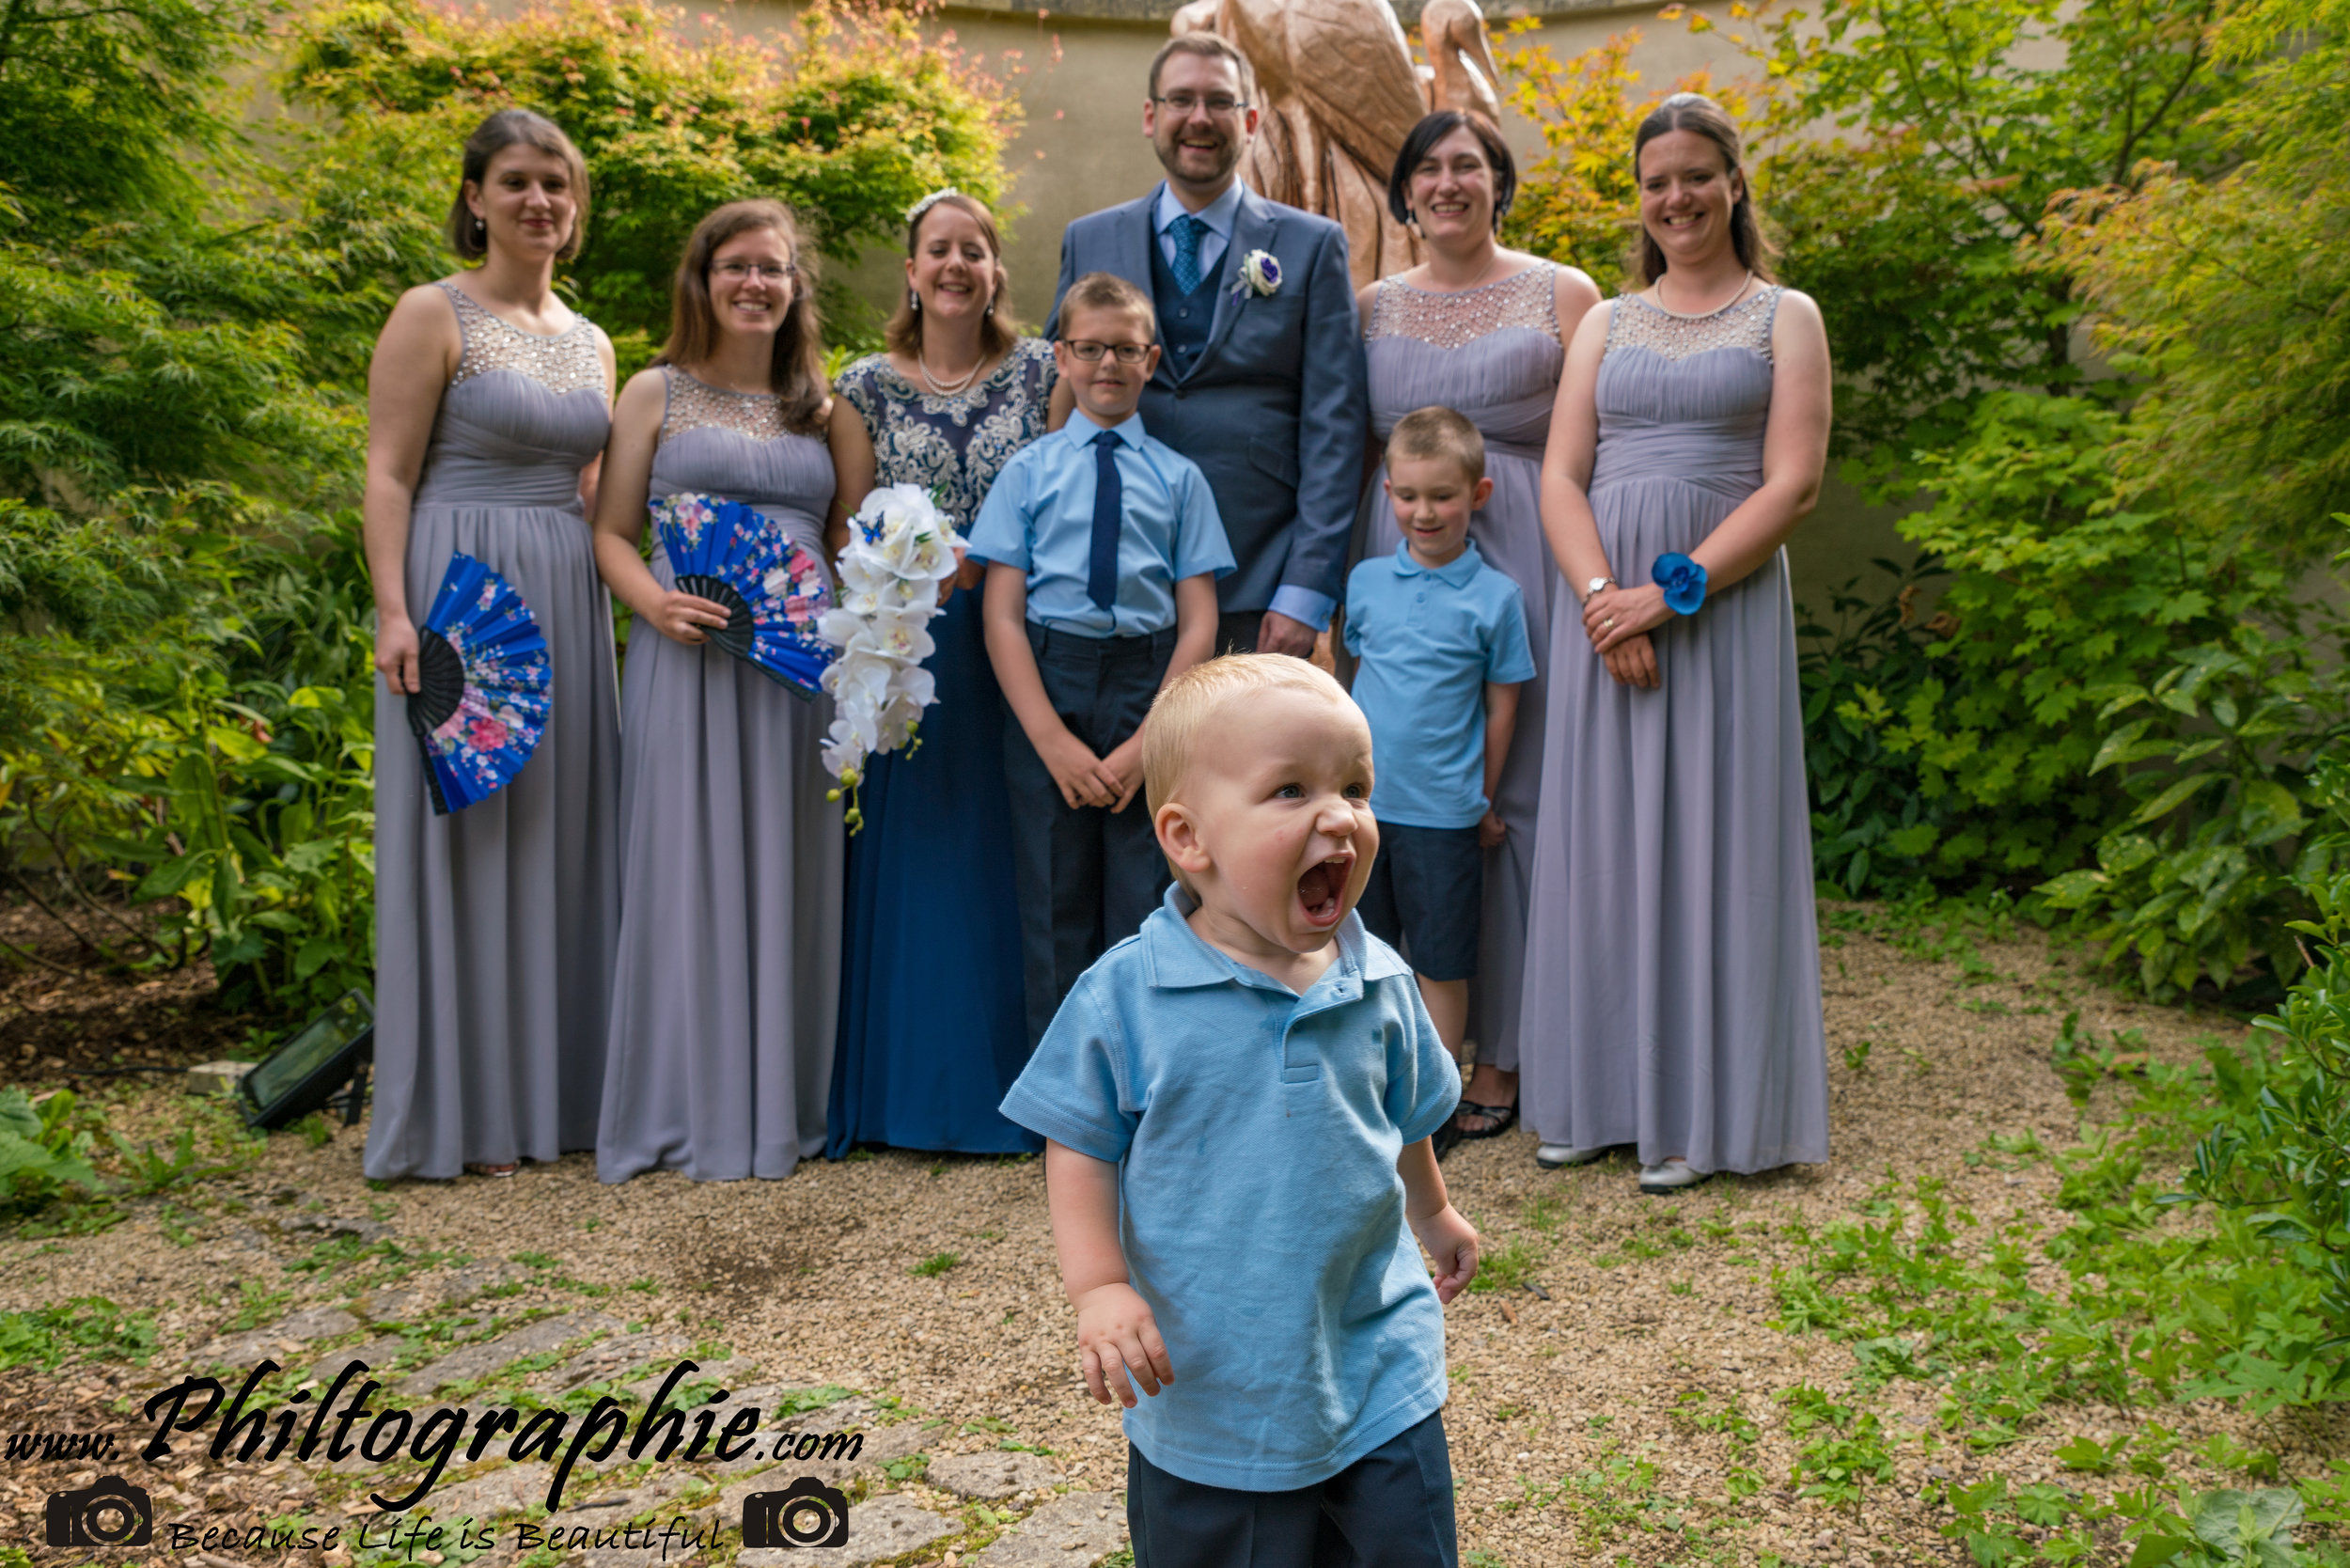 Wedding photographer Matara Gloucestershire